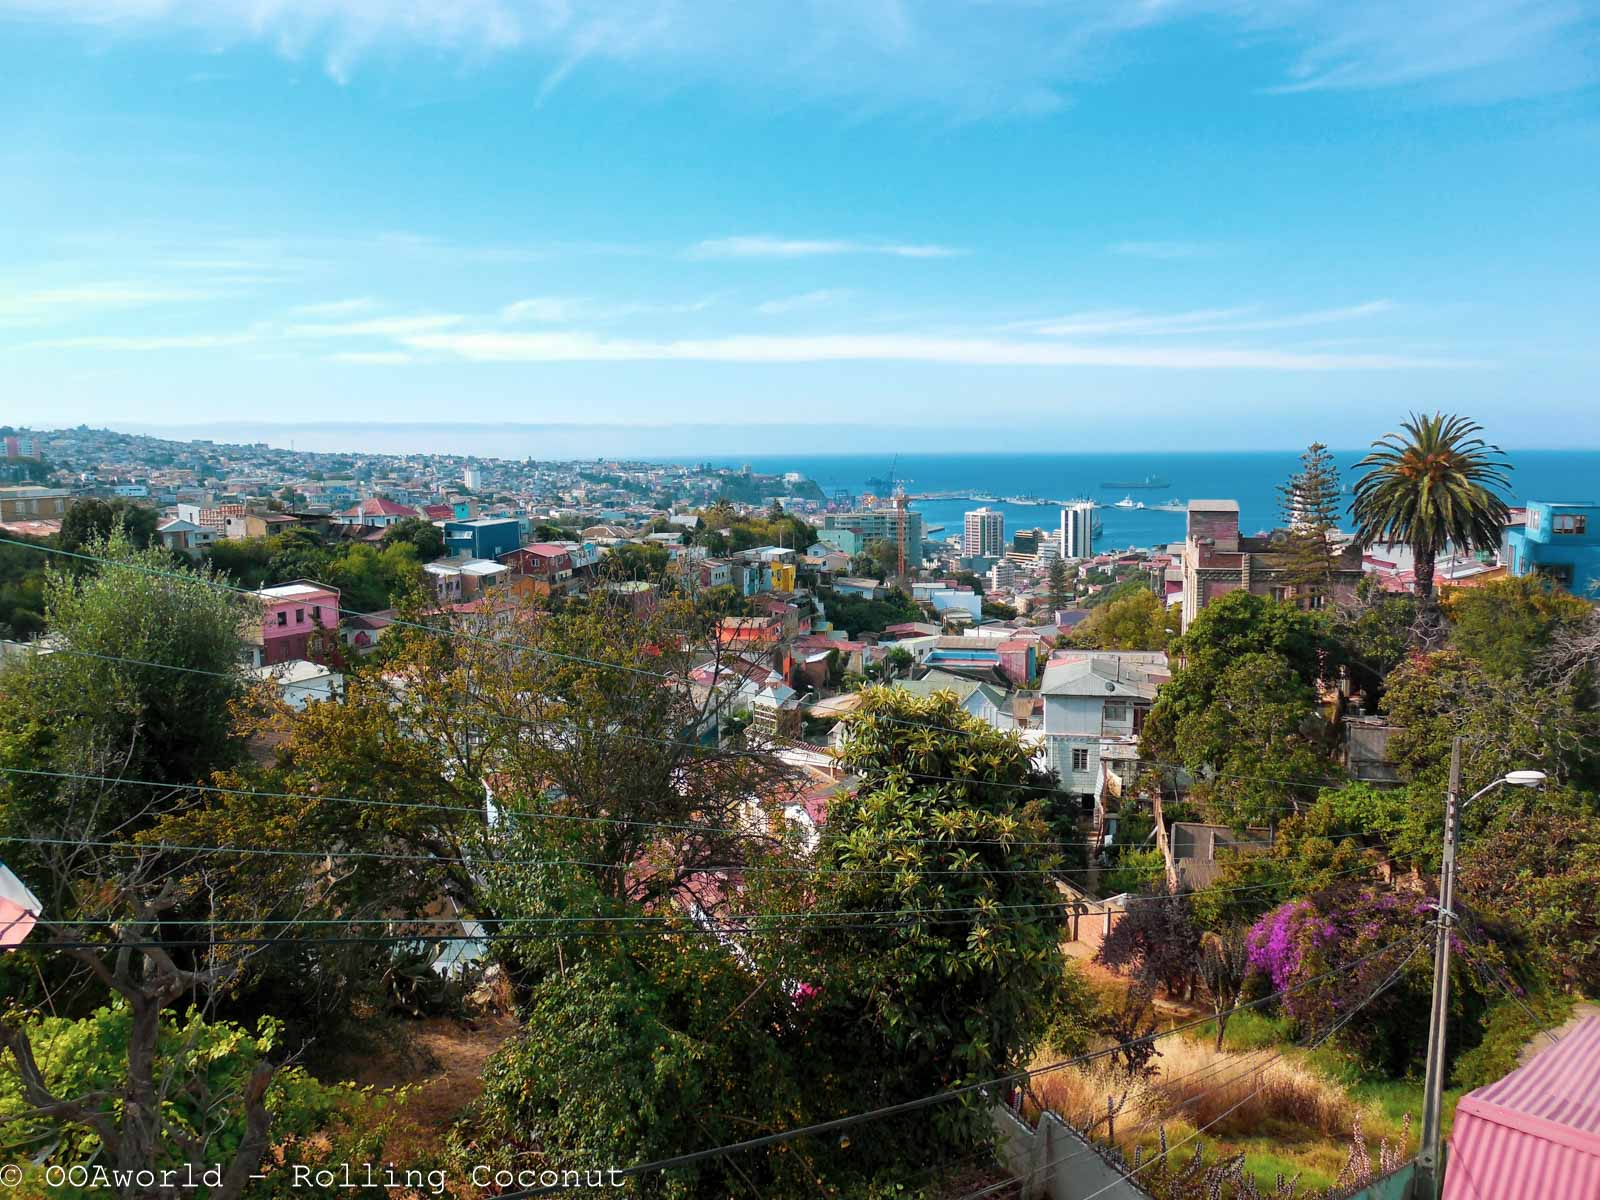 Valparaiso from Pablo Neruda's home, Chile - OOAworld Rolling Coconut